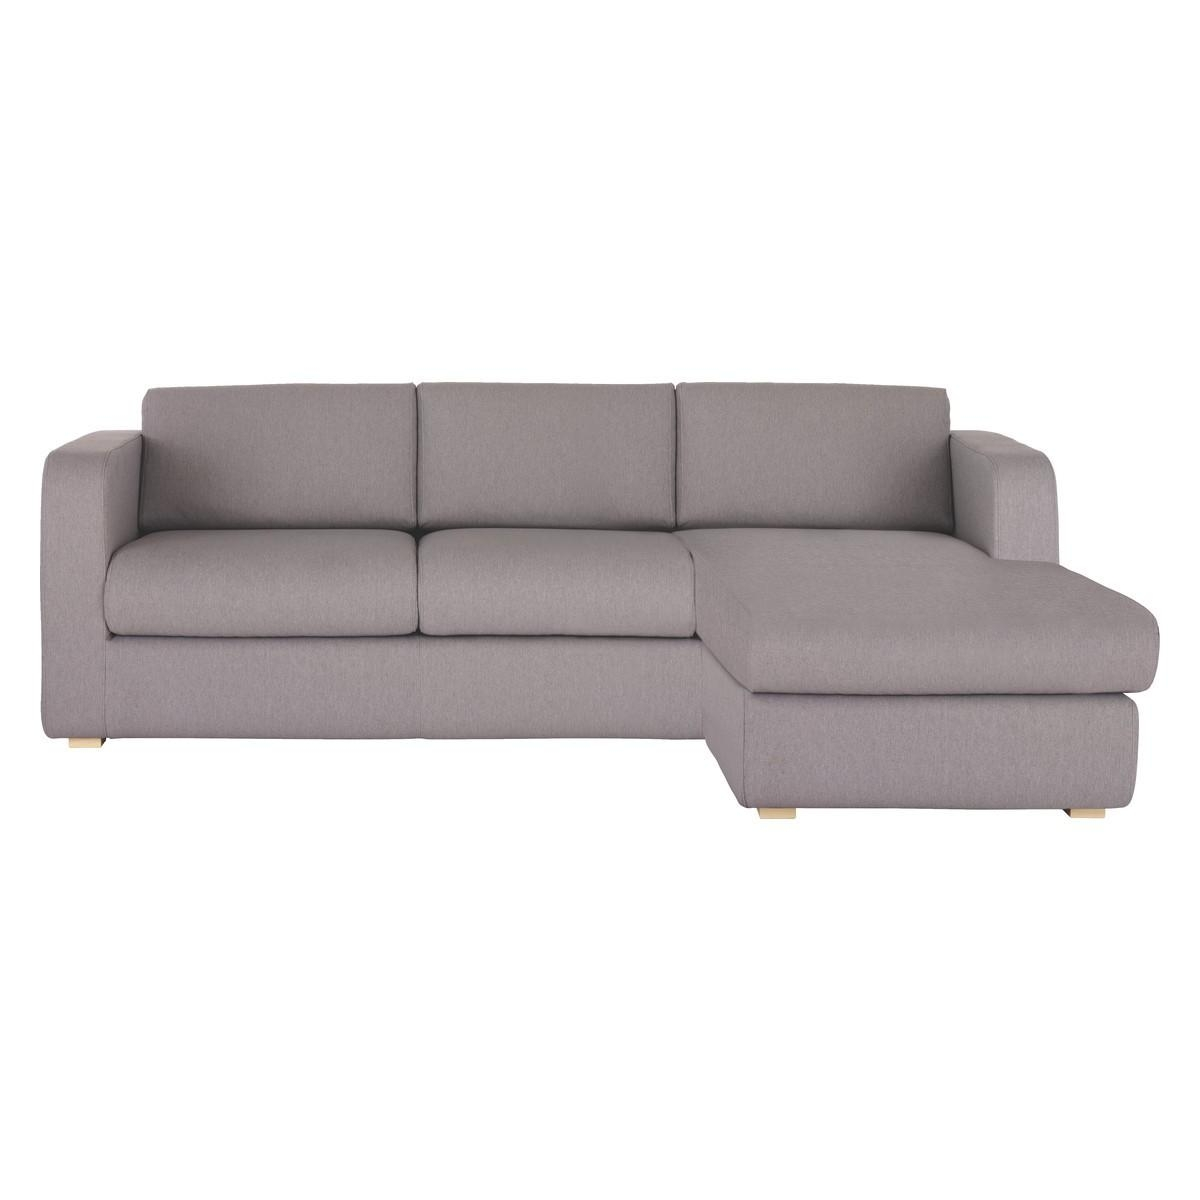 Sofas Center : Chaise Lounge Sofa Wonderful Withaijou World Inside Chaise Sofa Beds With Storage (View 8 of 20)